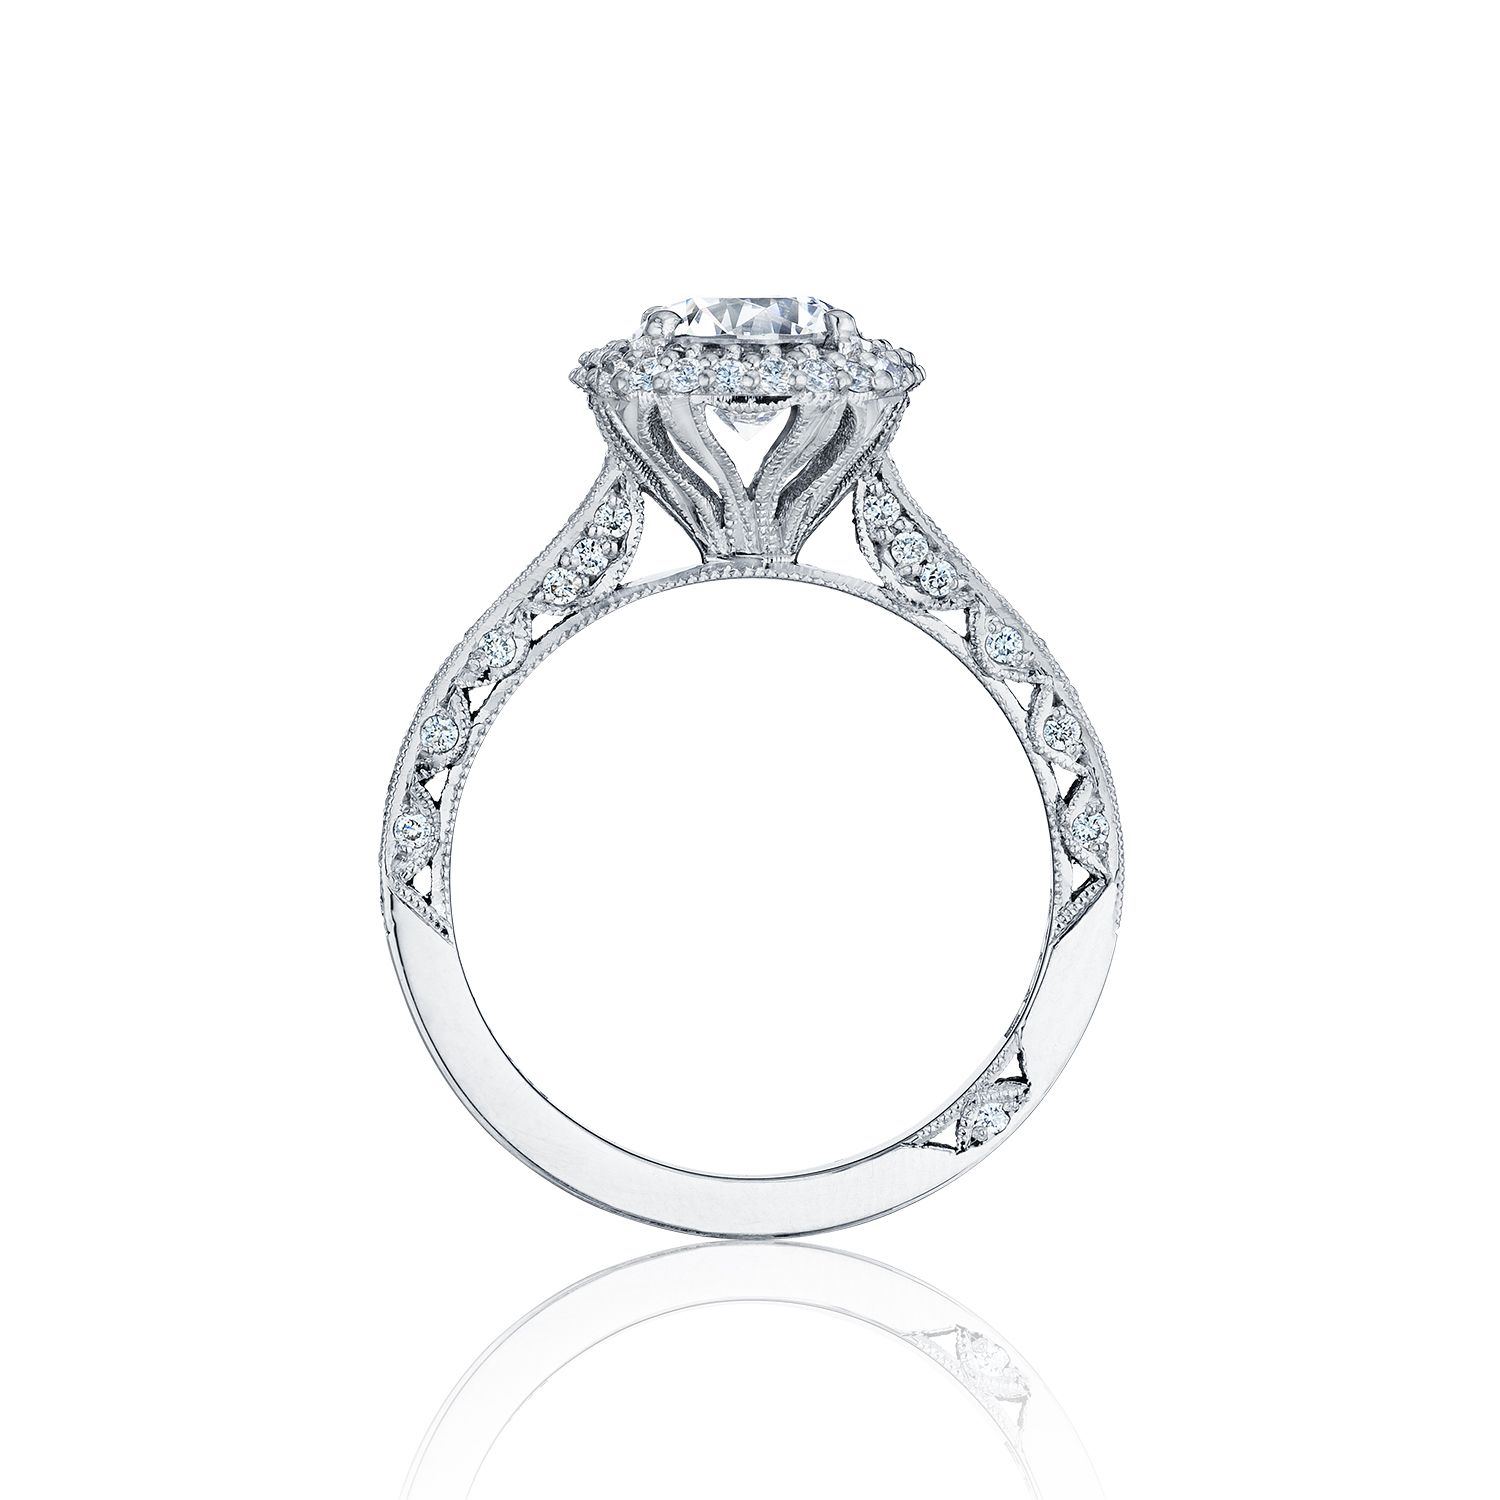 of diamond cut engagement ring jewellery platinum wedding inspirational awesome settings emerald